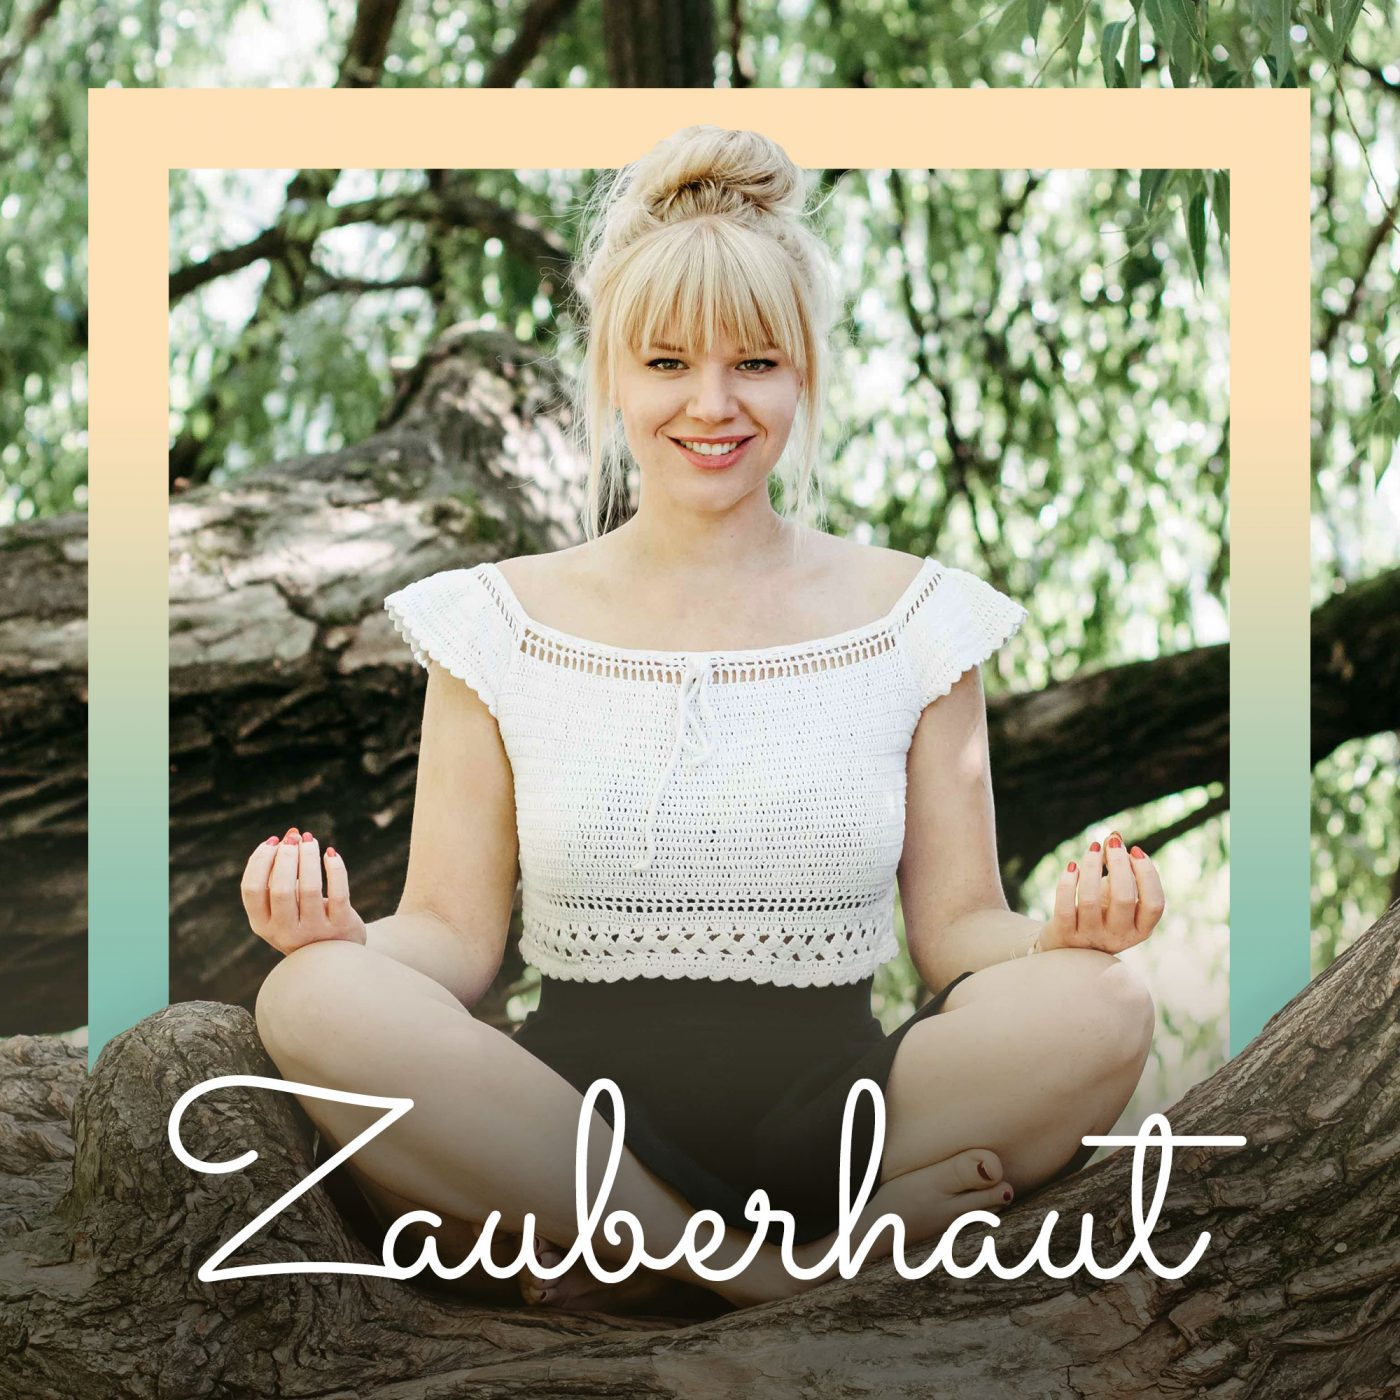 zauberhaut_podcast_cover